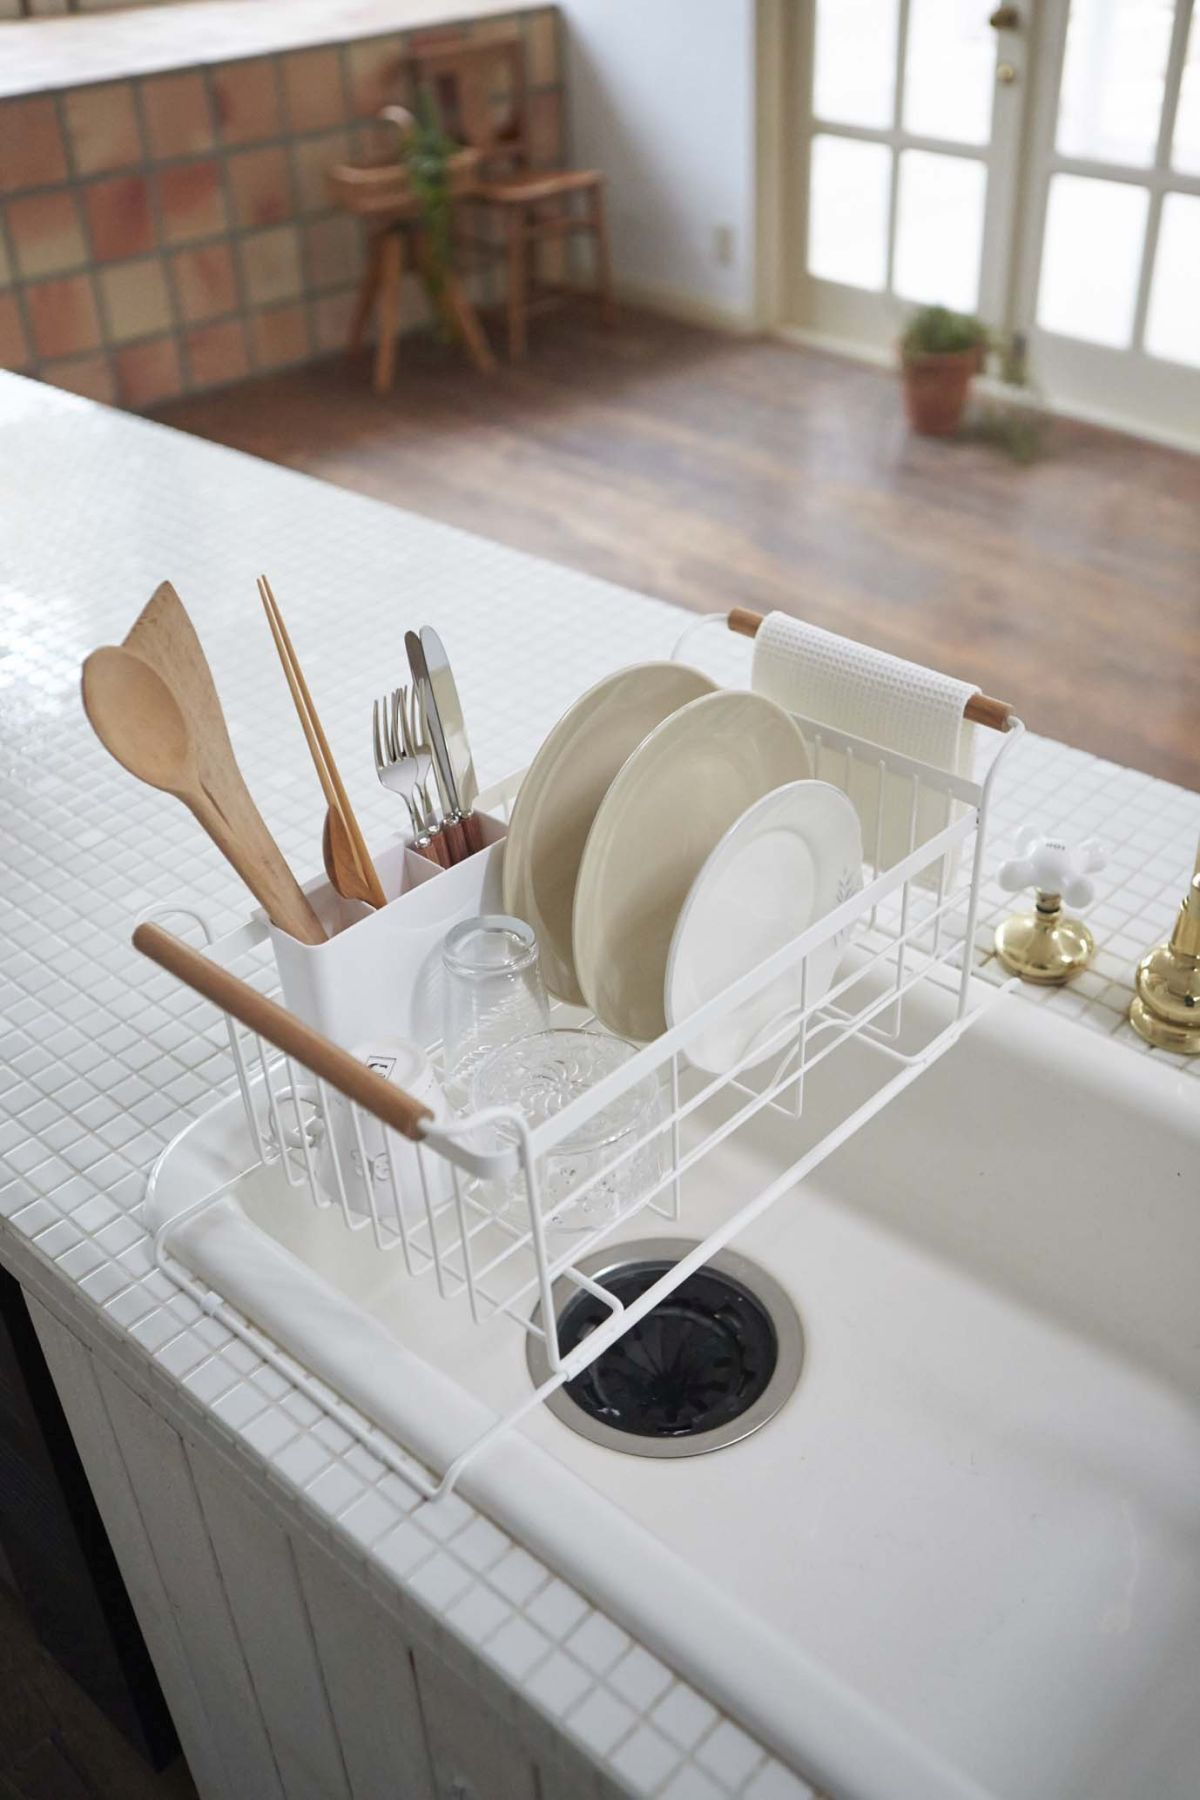 Kitchen Motif Ideas | Dish drainers, Sinks and Dishes